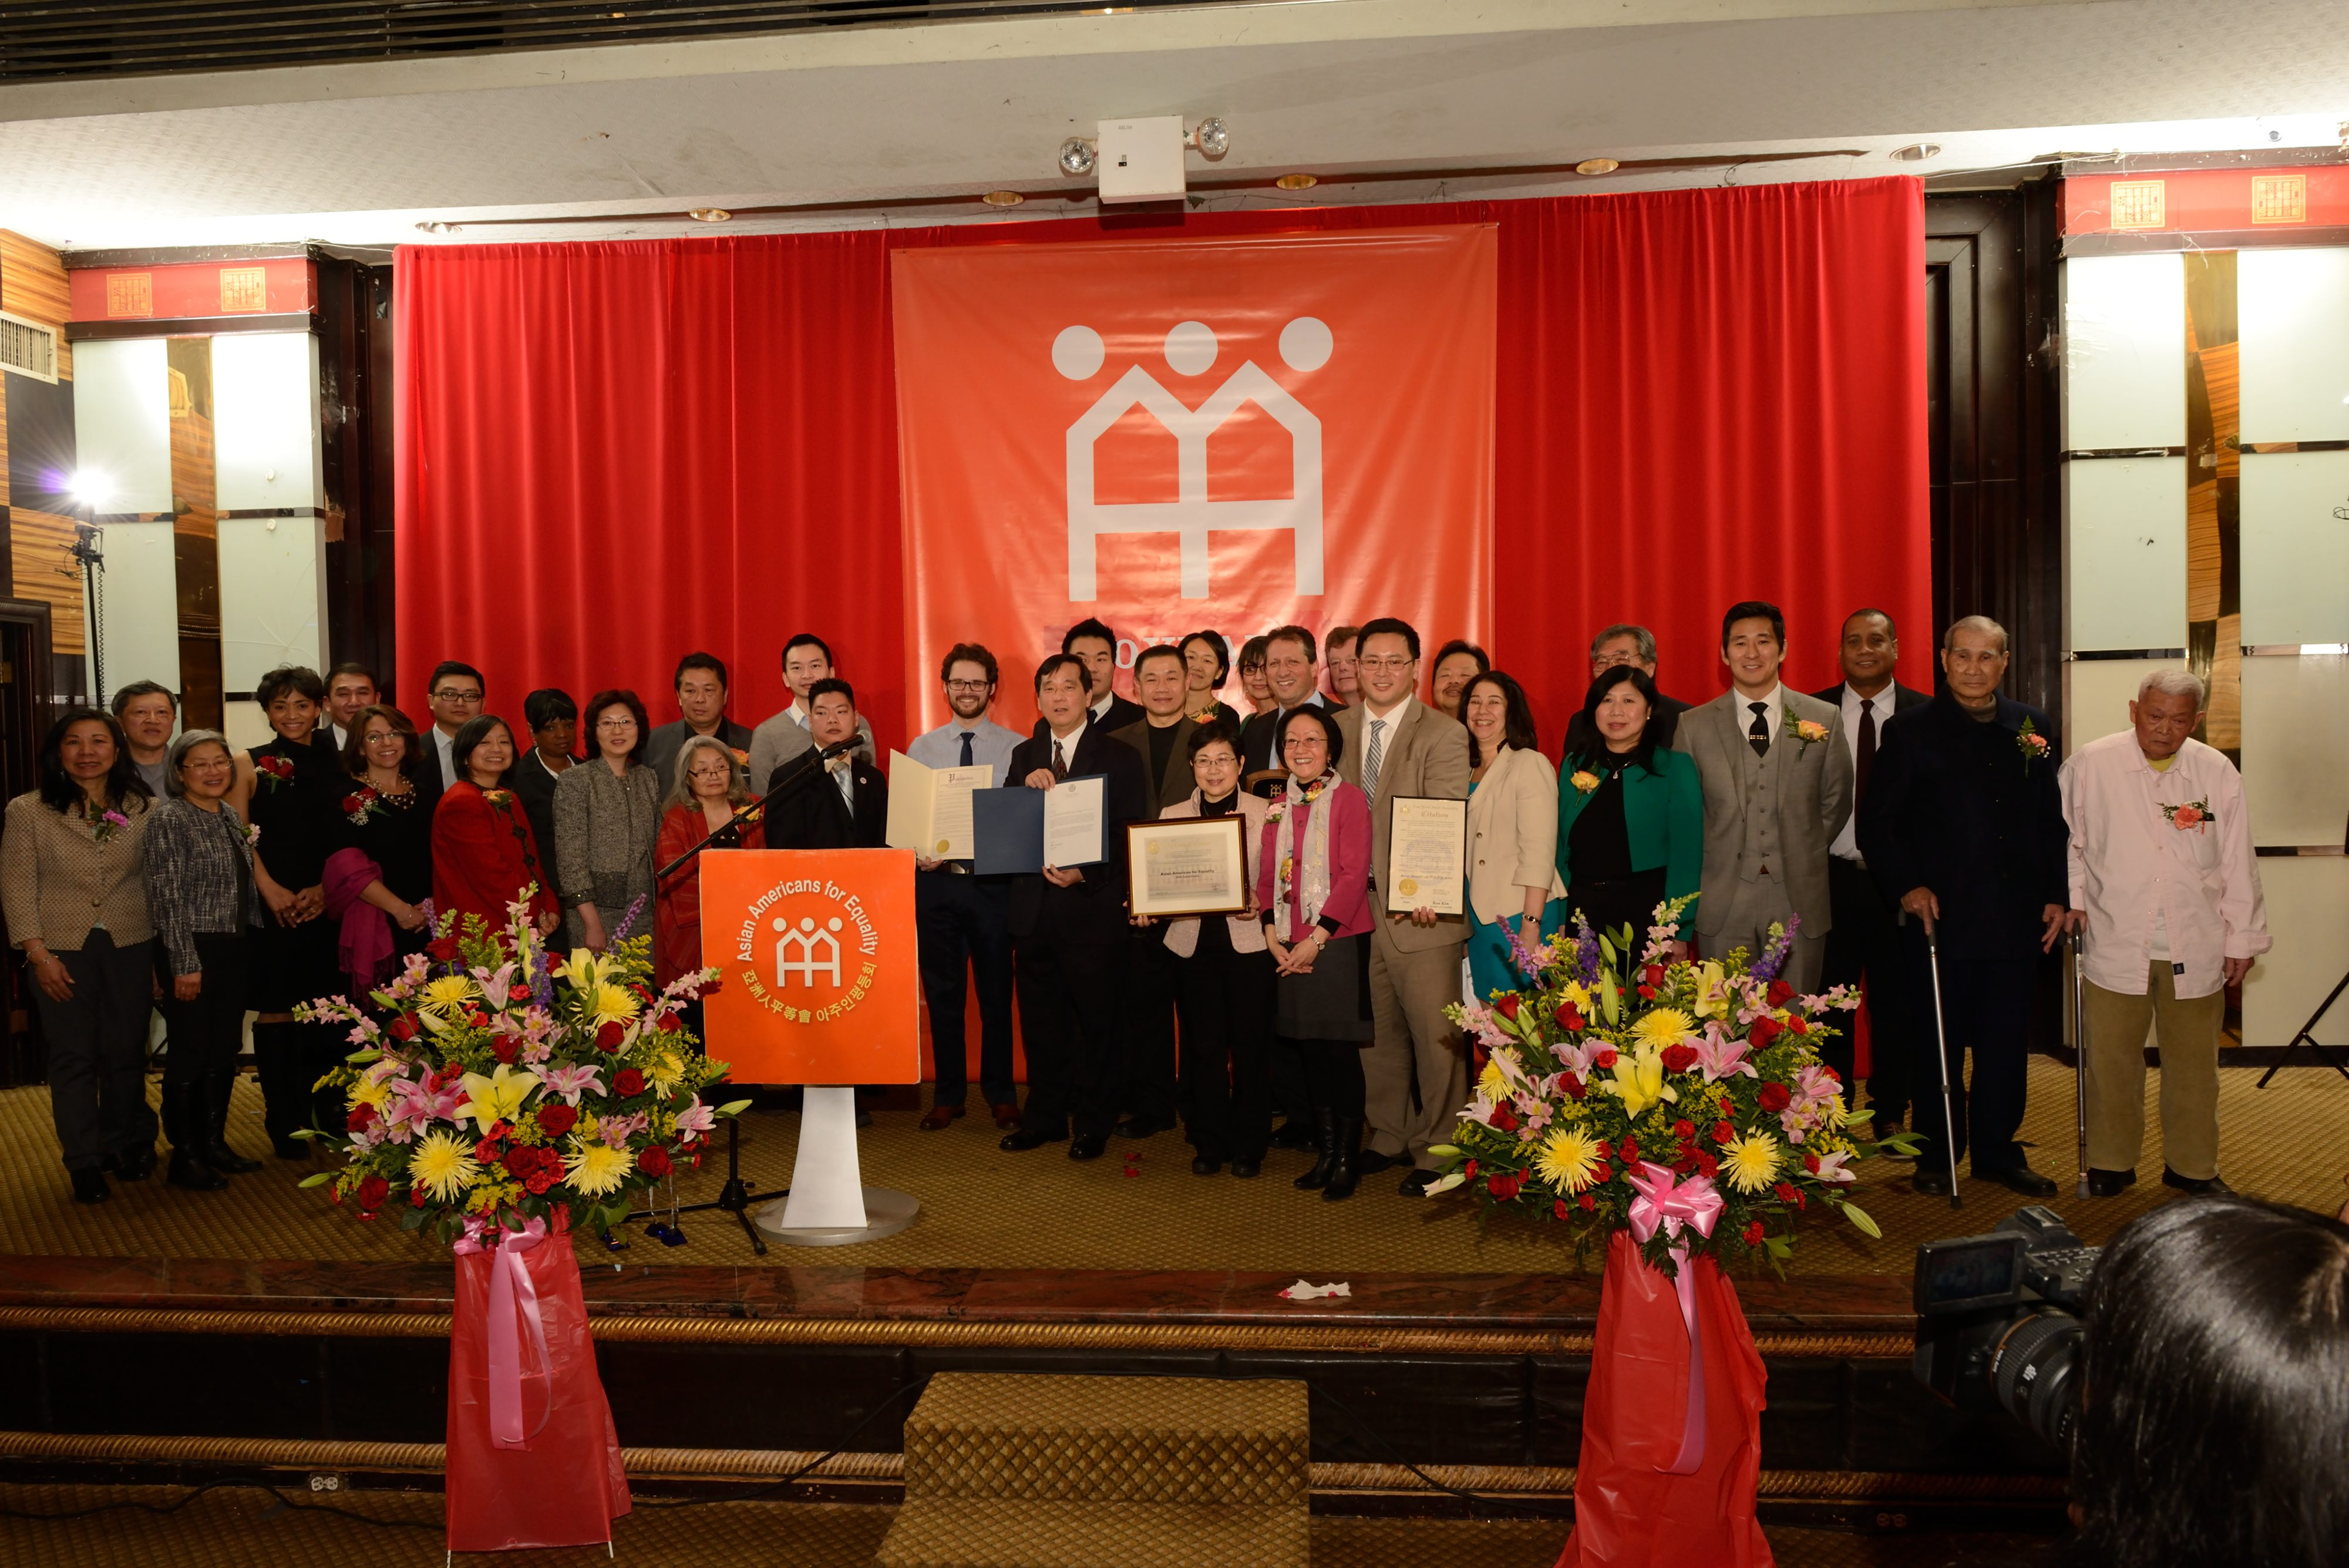 AAFE Celebrates 40th Anniversary and Lunar New Year